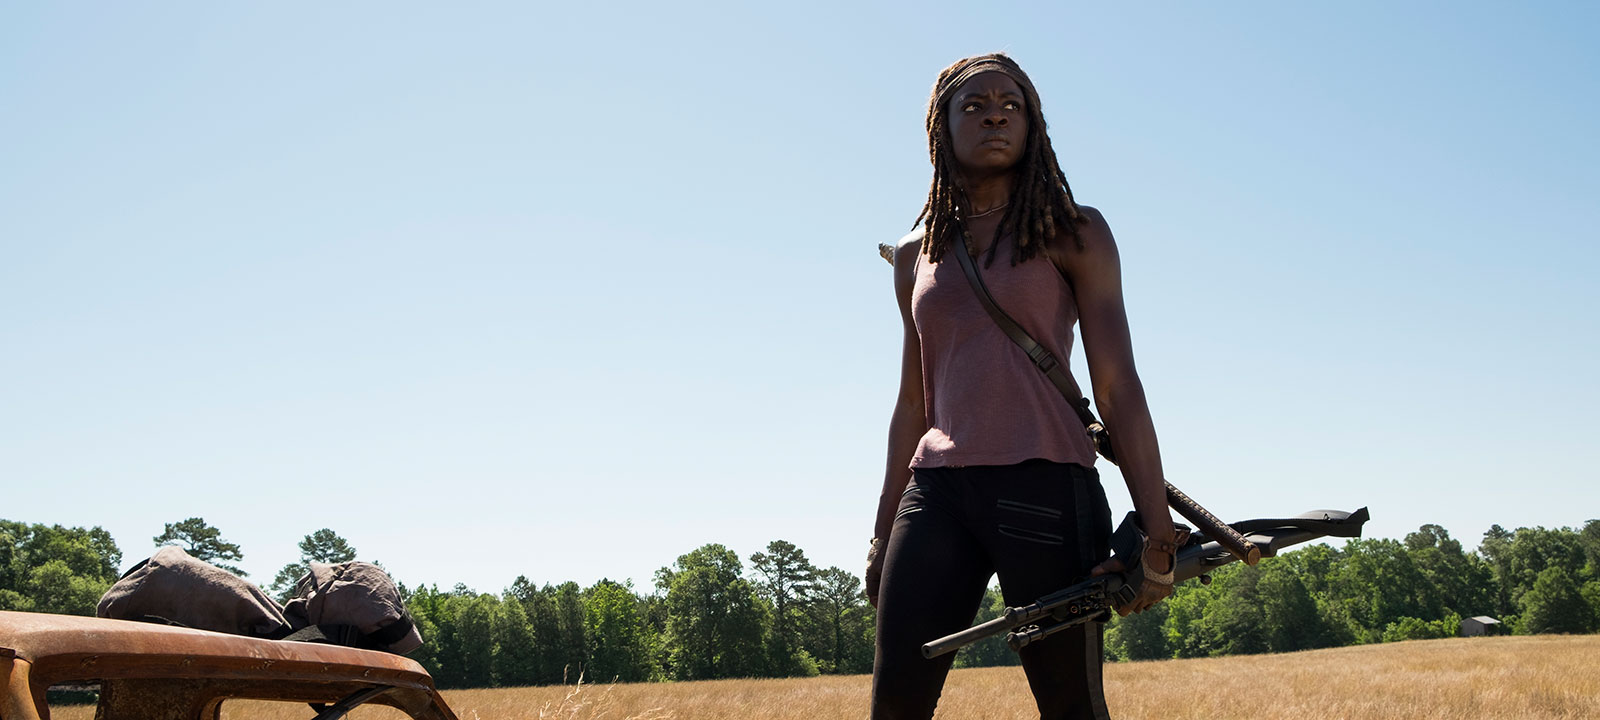 the-walking-dead-episode-704-michonne-gurira-800×600-interview